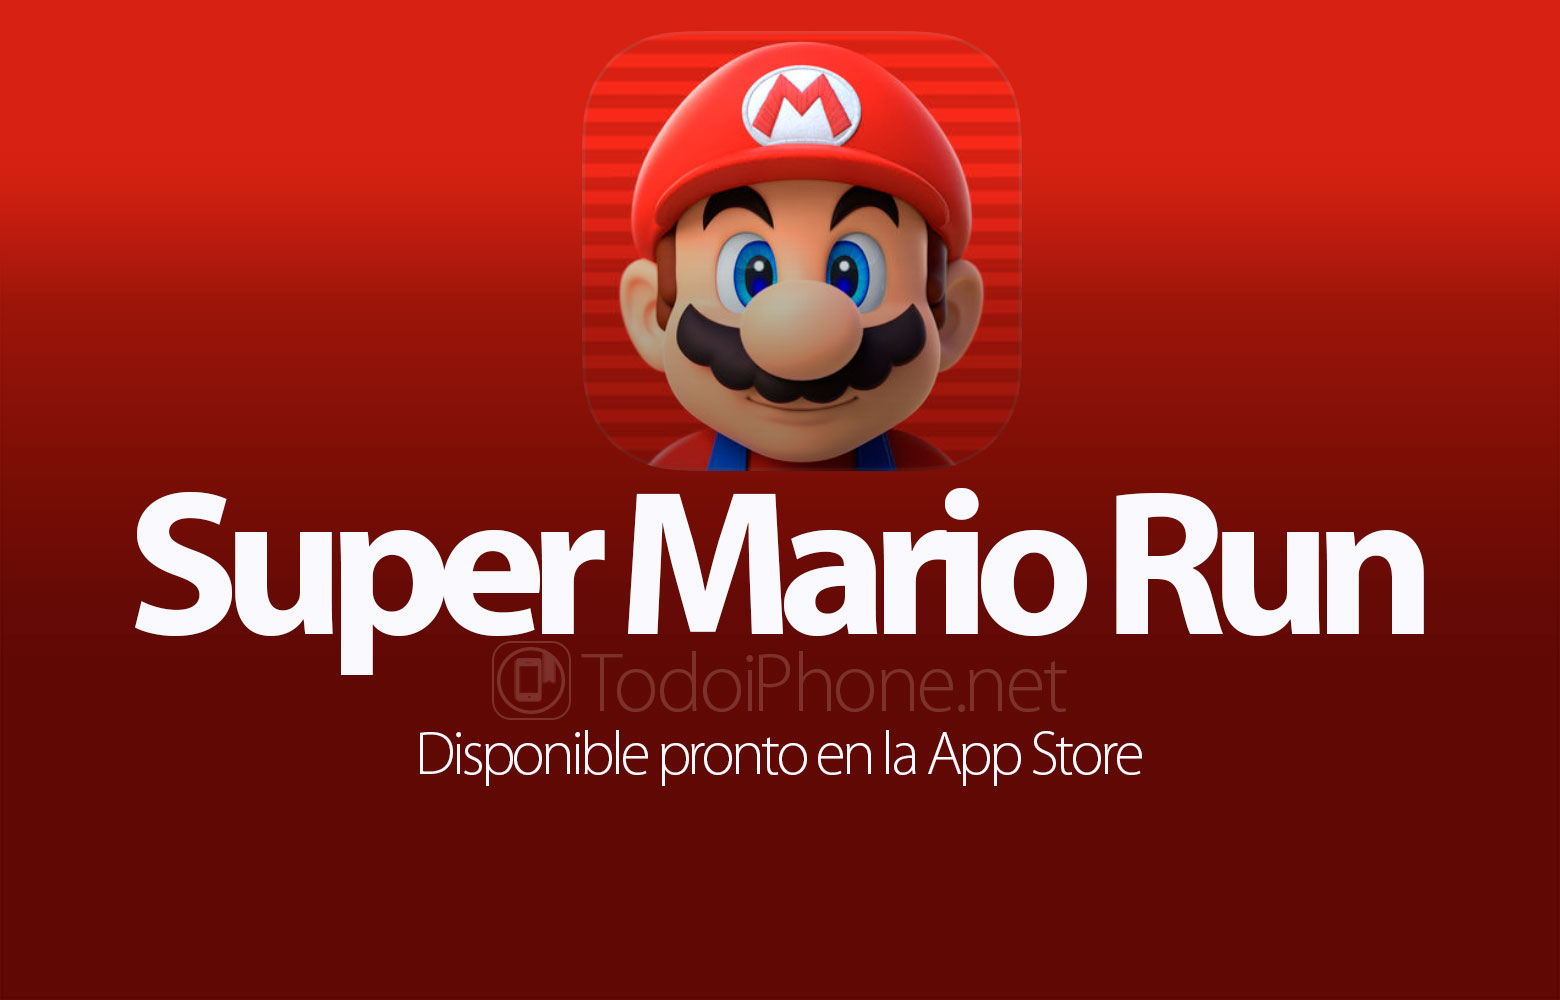 super-mario-run-disponible-pronto